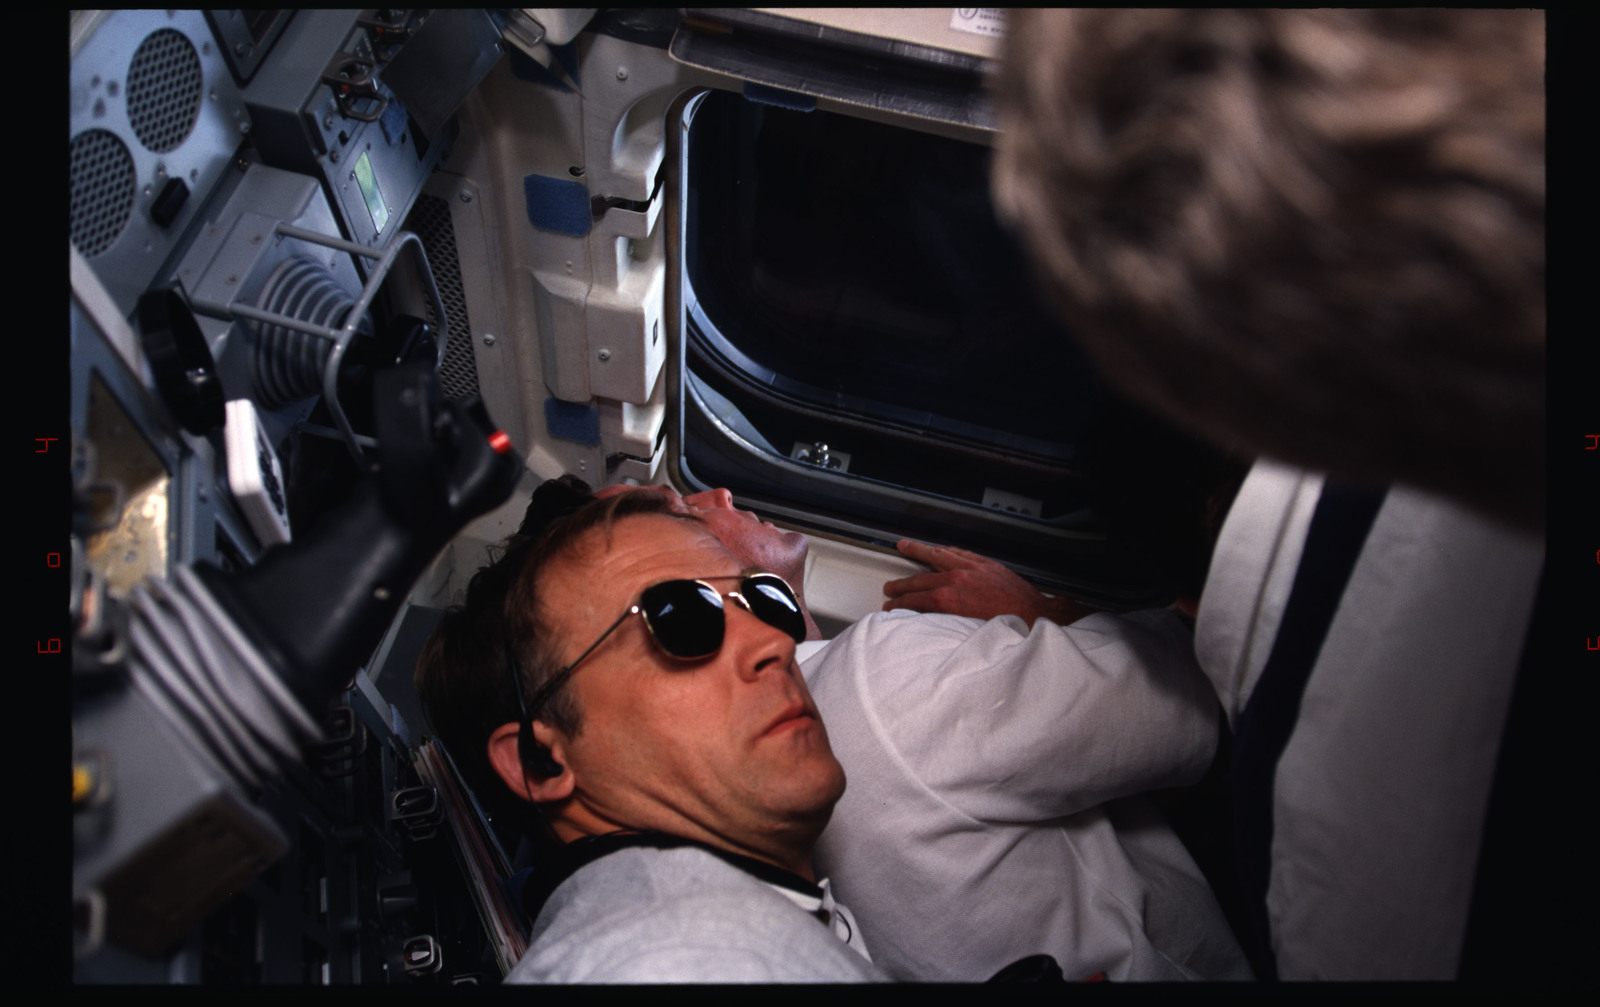 STS082-333-025 - STS-082 - Crewmember activities in the shuttle middeck and flight deck